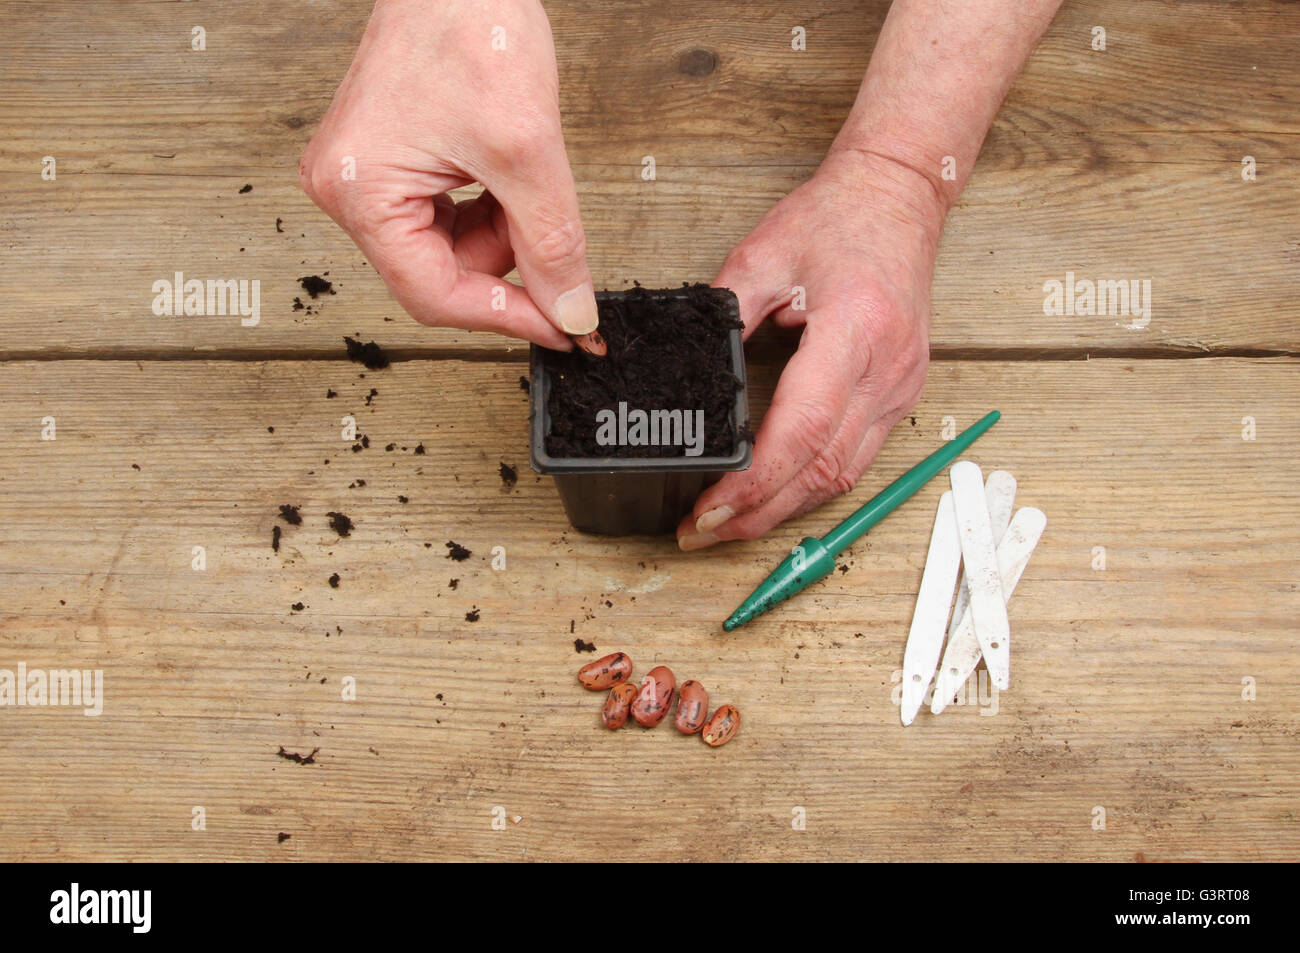 Hands planting a runner bean seed into a plant pot full of compost on a wooden potting bench - Stock Image